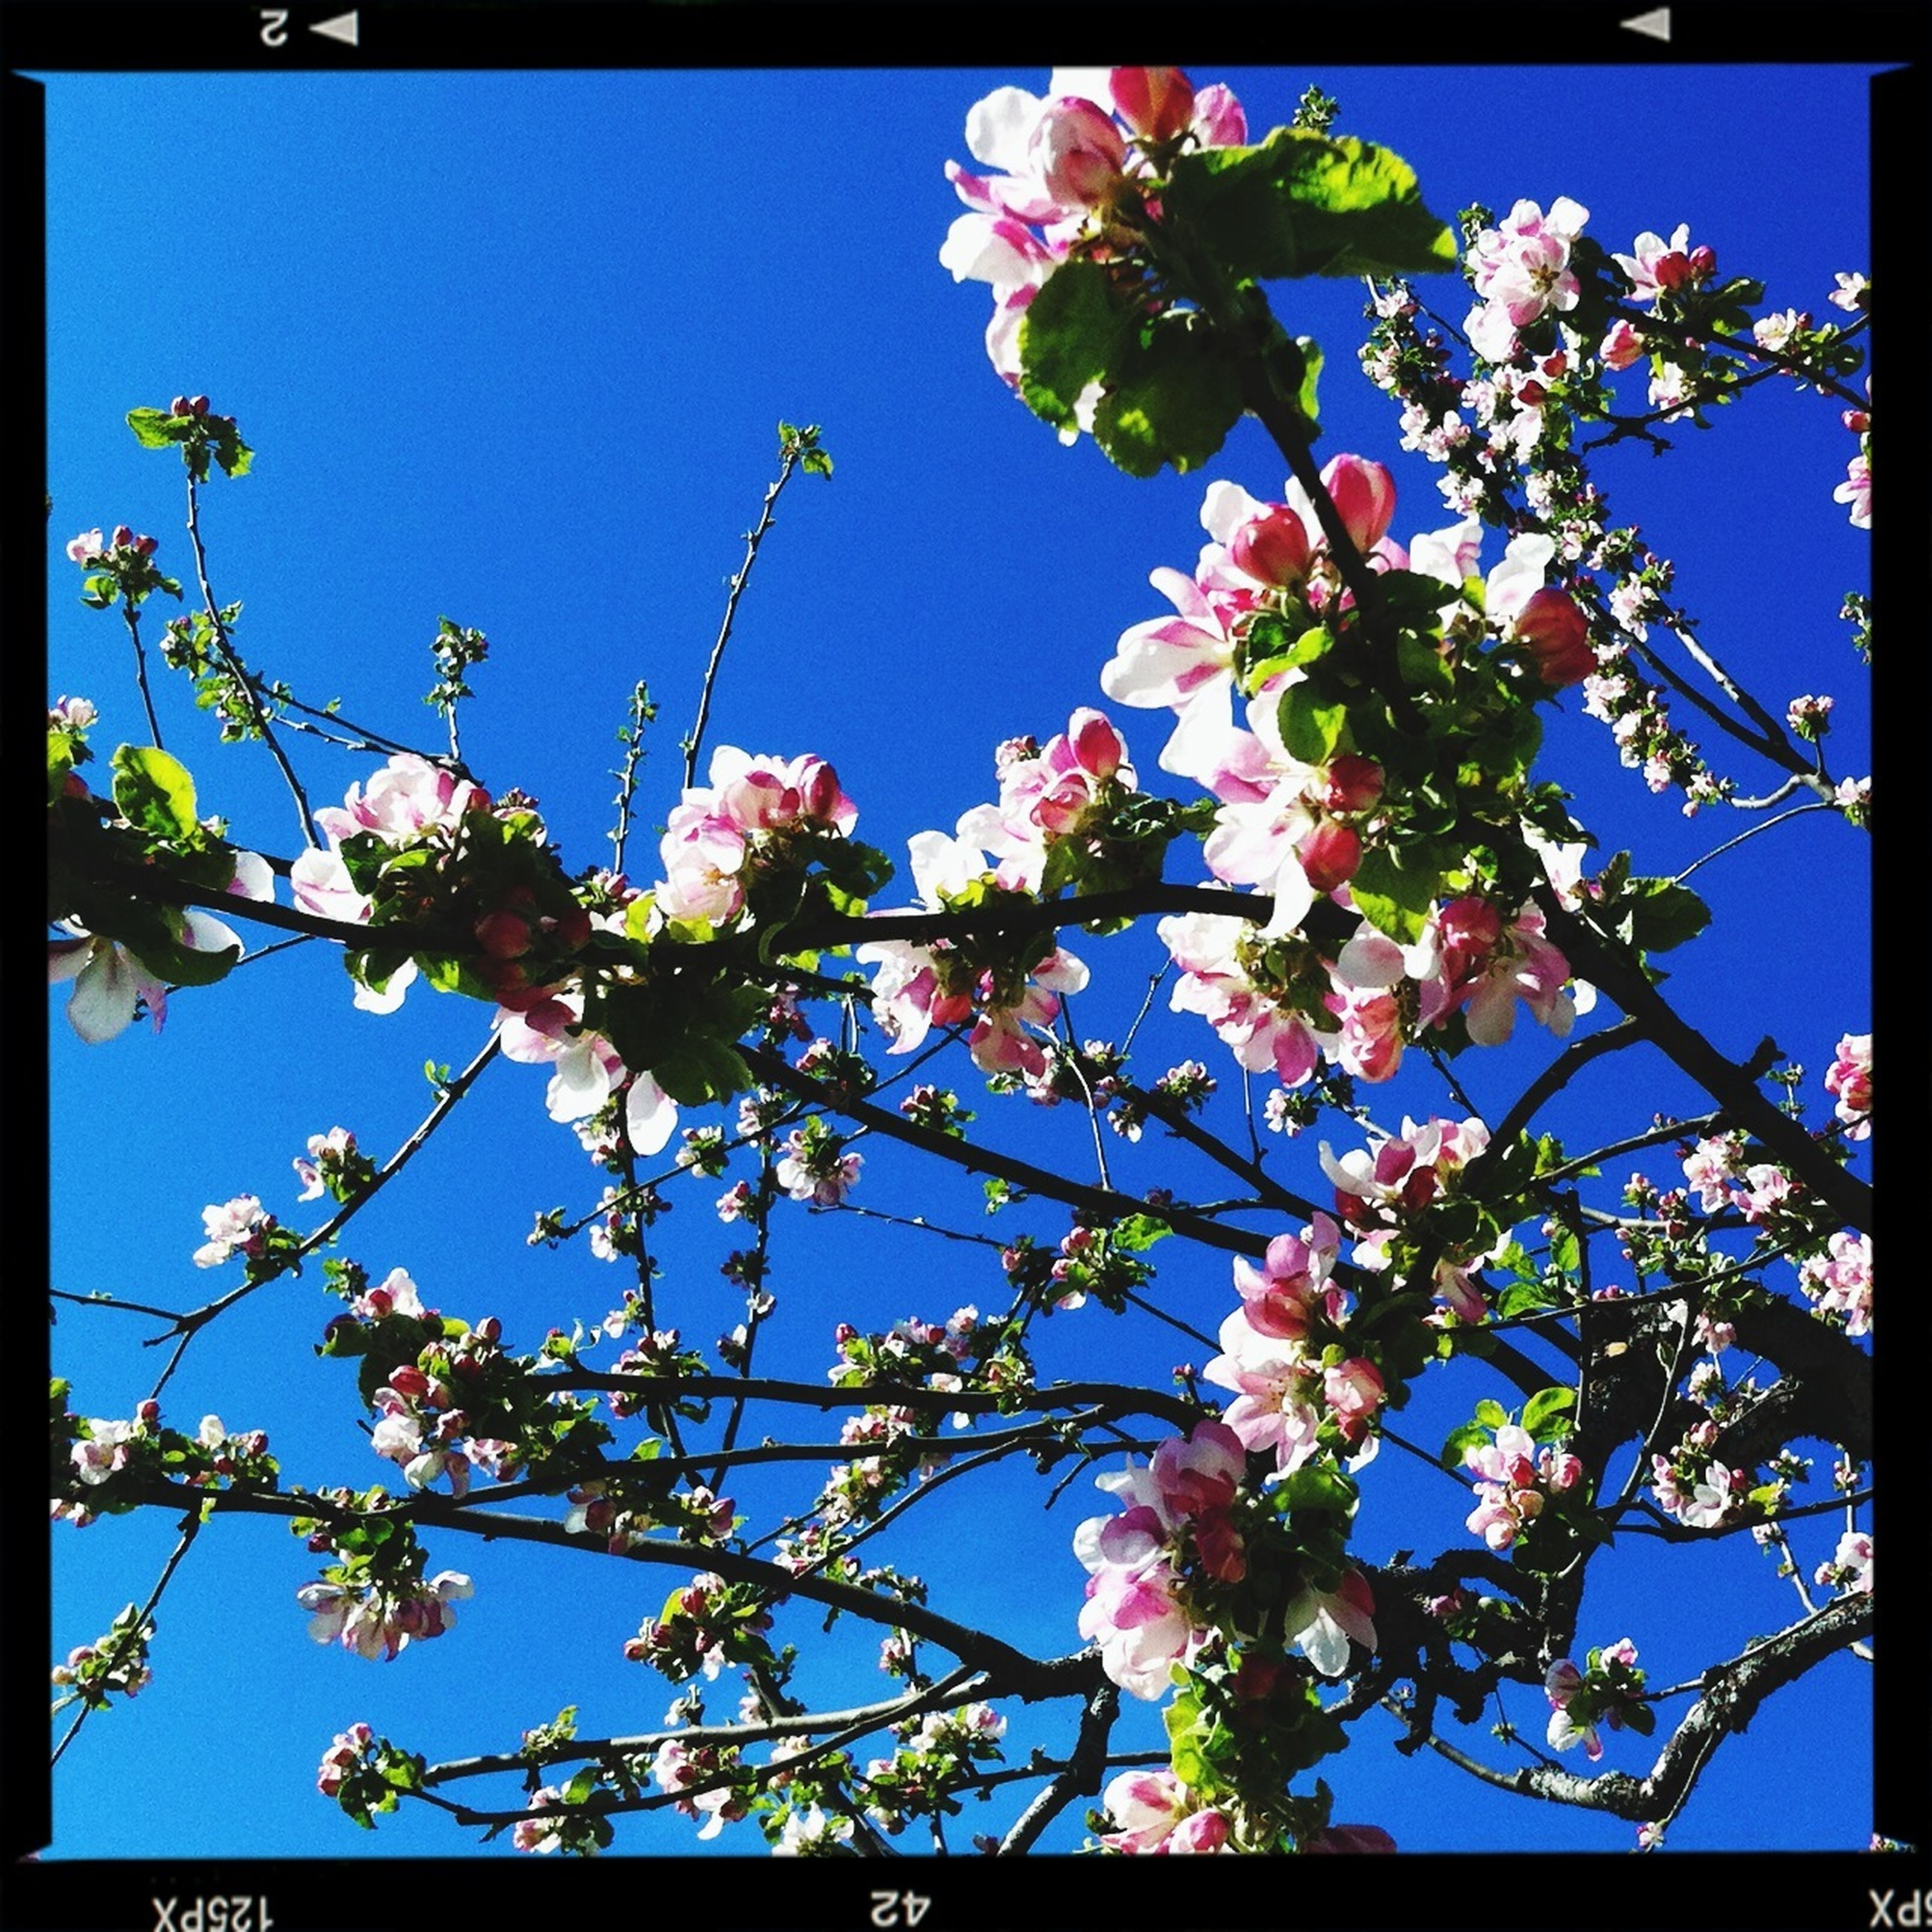 flower, low angle view, freshness, growth, branch, tree, transfer print, clear sky, beauty in nature, fragility, blue, nature, blossom, auto post production filter, sky, blooming, in bloom, sunlight, petal, day